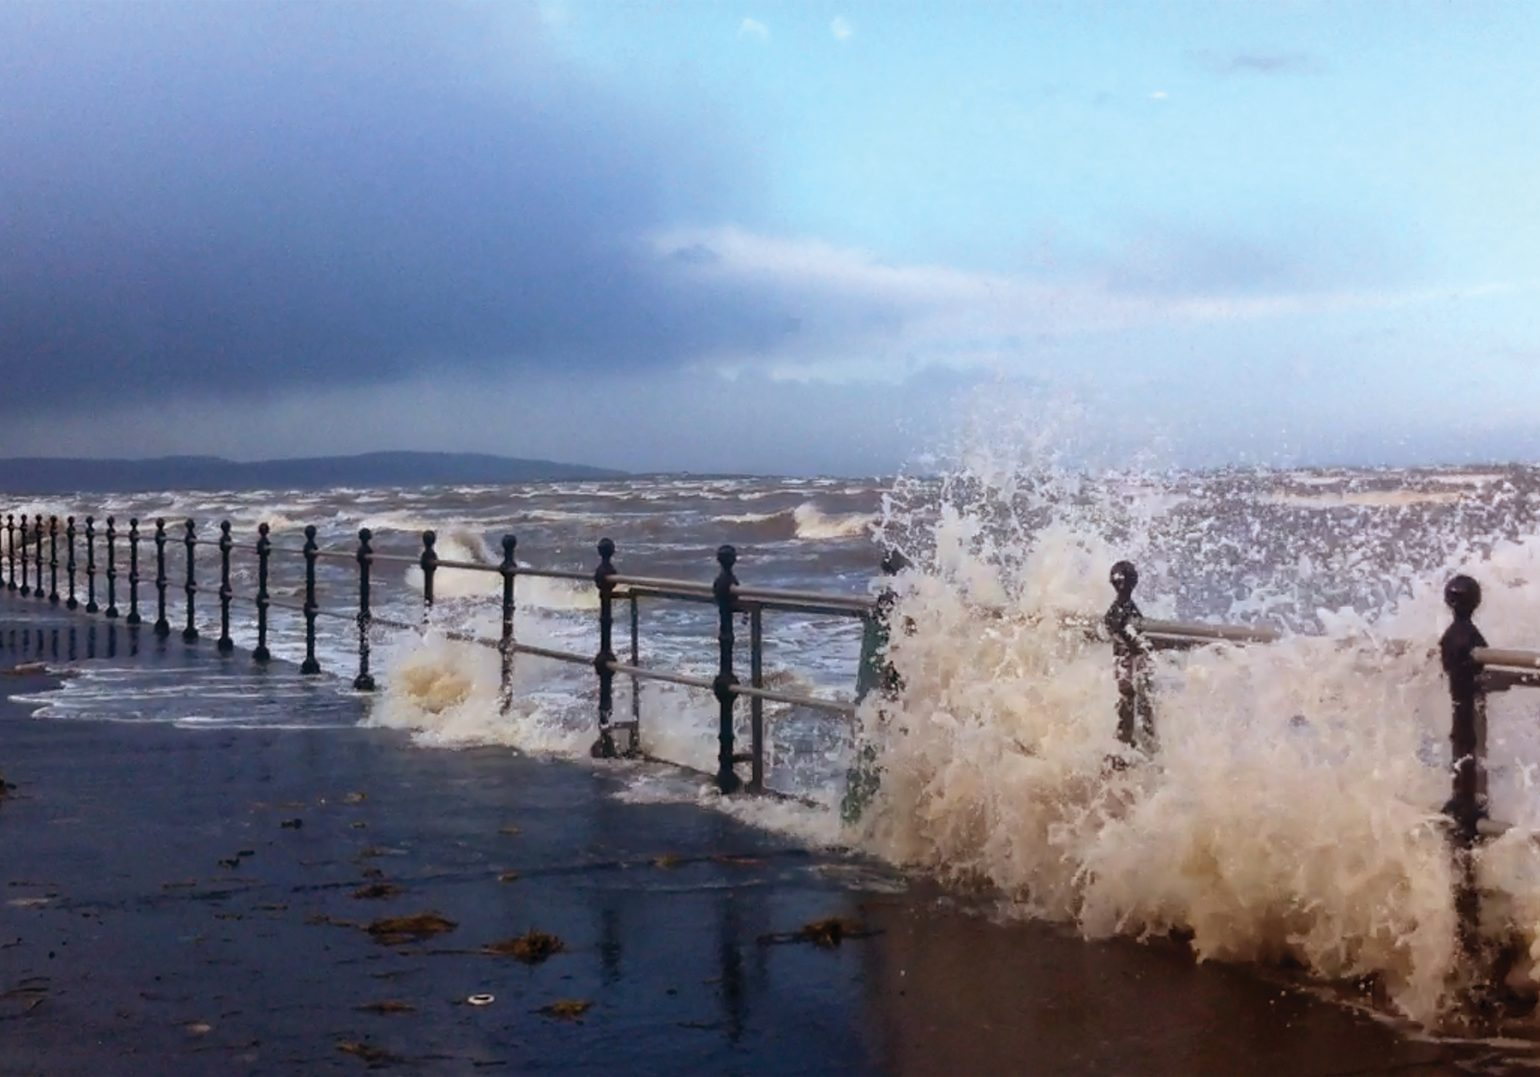 Extreme weather events are set to increase in frequency. Will Hoylake's coastal defences, built in1897, be sufficient in years to come? © HVL